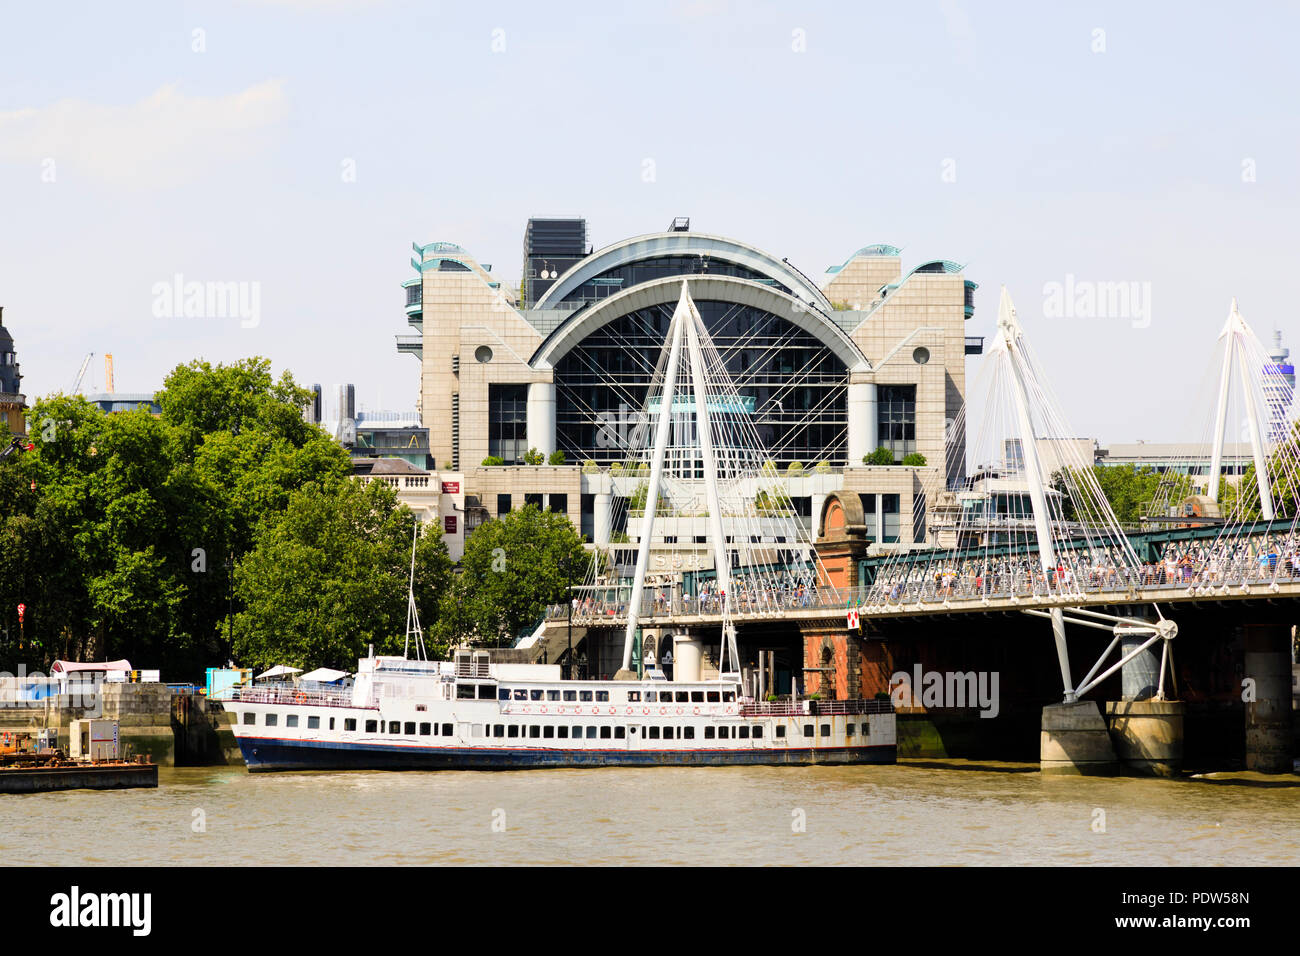 Charing Cross rail station on the North bank of the River Thames, London. The R.S. Hispaniola, floating restaurant is moored at Victoria Embankment. t - Stock Image